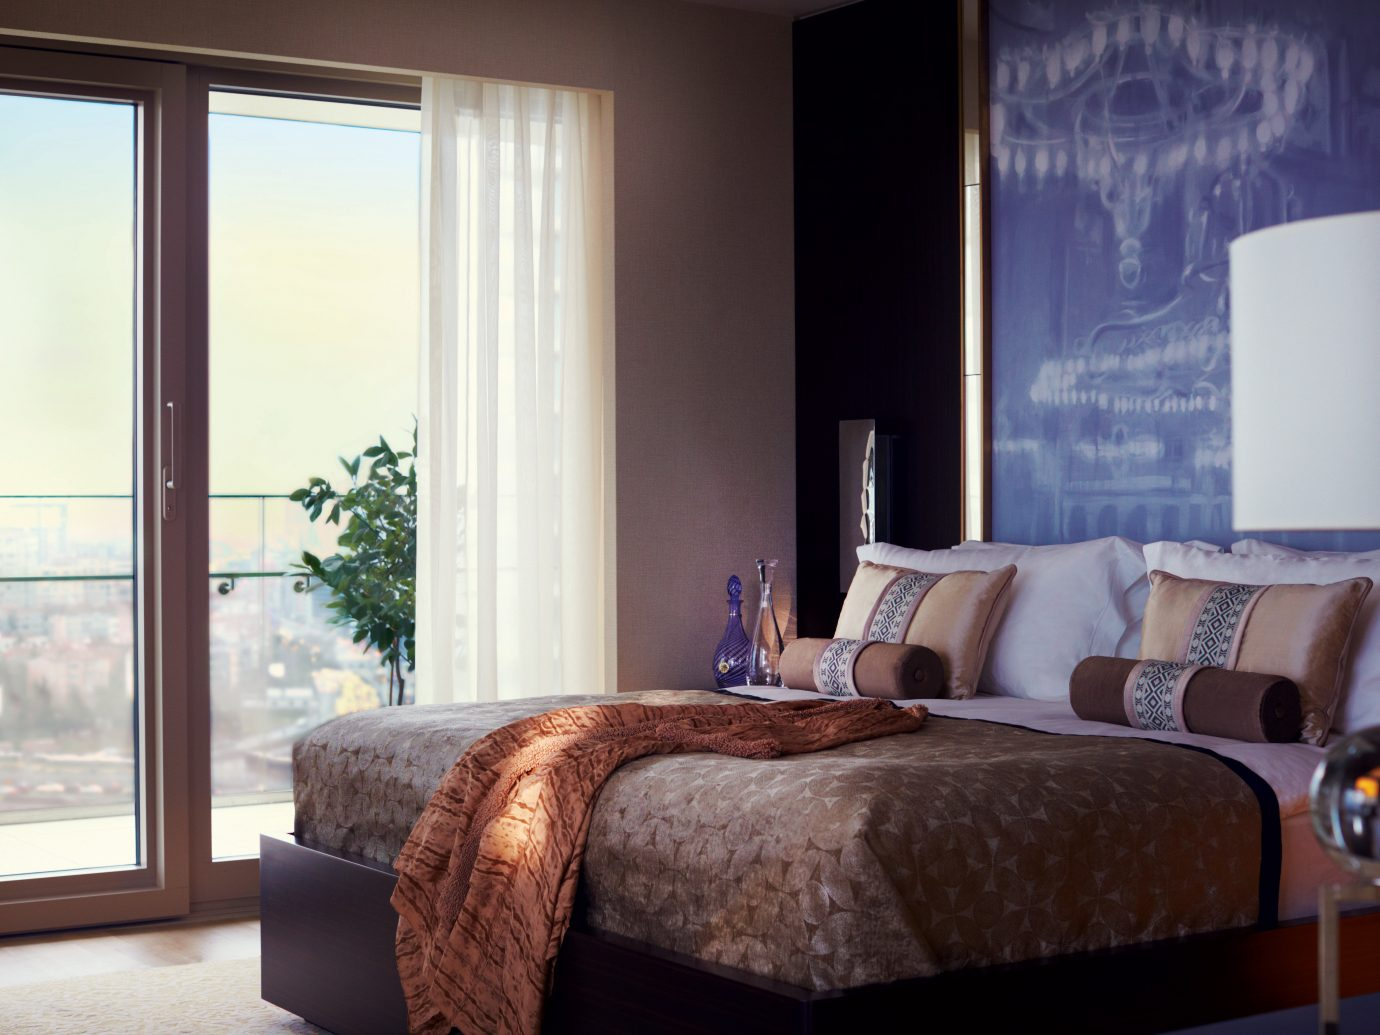 Bedroom Boutique Hotels City Hotels Lounge Luxury Travel Scenic views Suite indoor window room sofa wall floor Living property interior design home living room furniture bed window covering real estate hotel curtain estate textile bed sheet window treatment cottage flat decorated